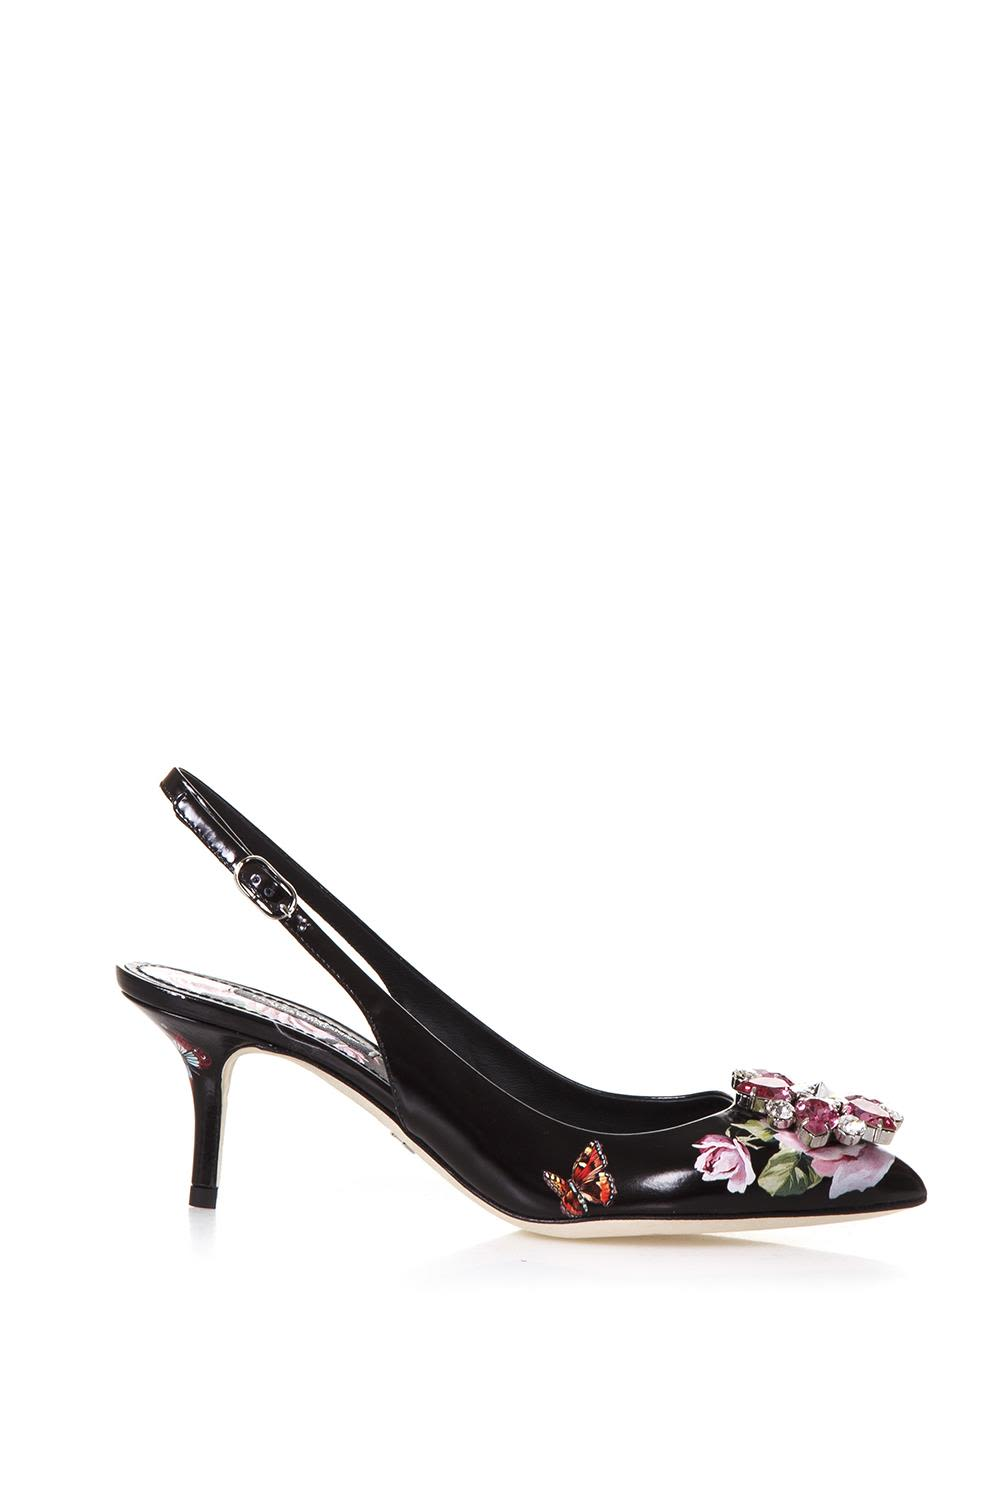 Dolce & Gabbana Slingback In Patent Leather